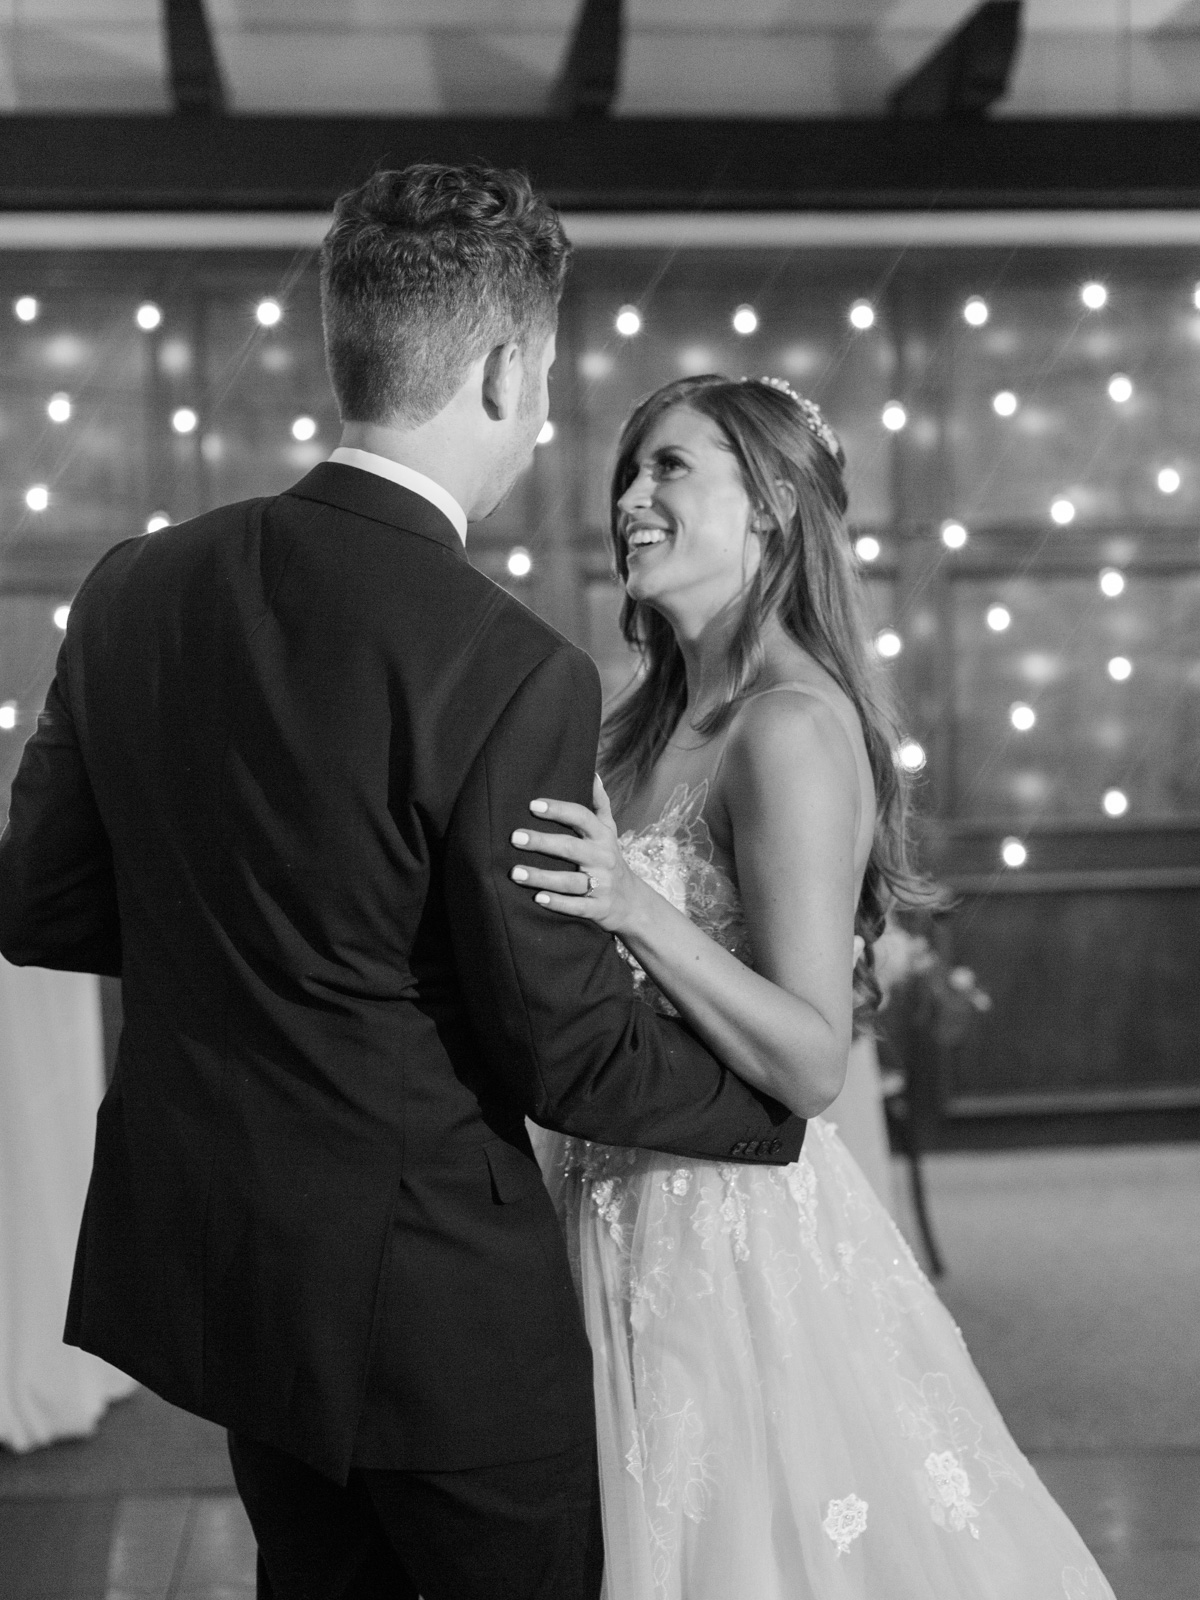 Bride & Groom's first dance Harrison & Jocelyne's gorgeous Temecula wedding day at Wiens Family Cellars captured by Temecula wedding photographers Betsy & John